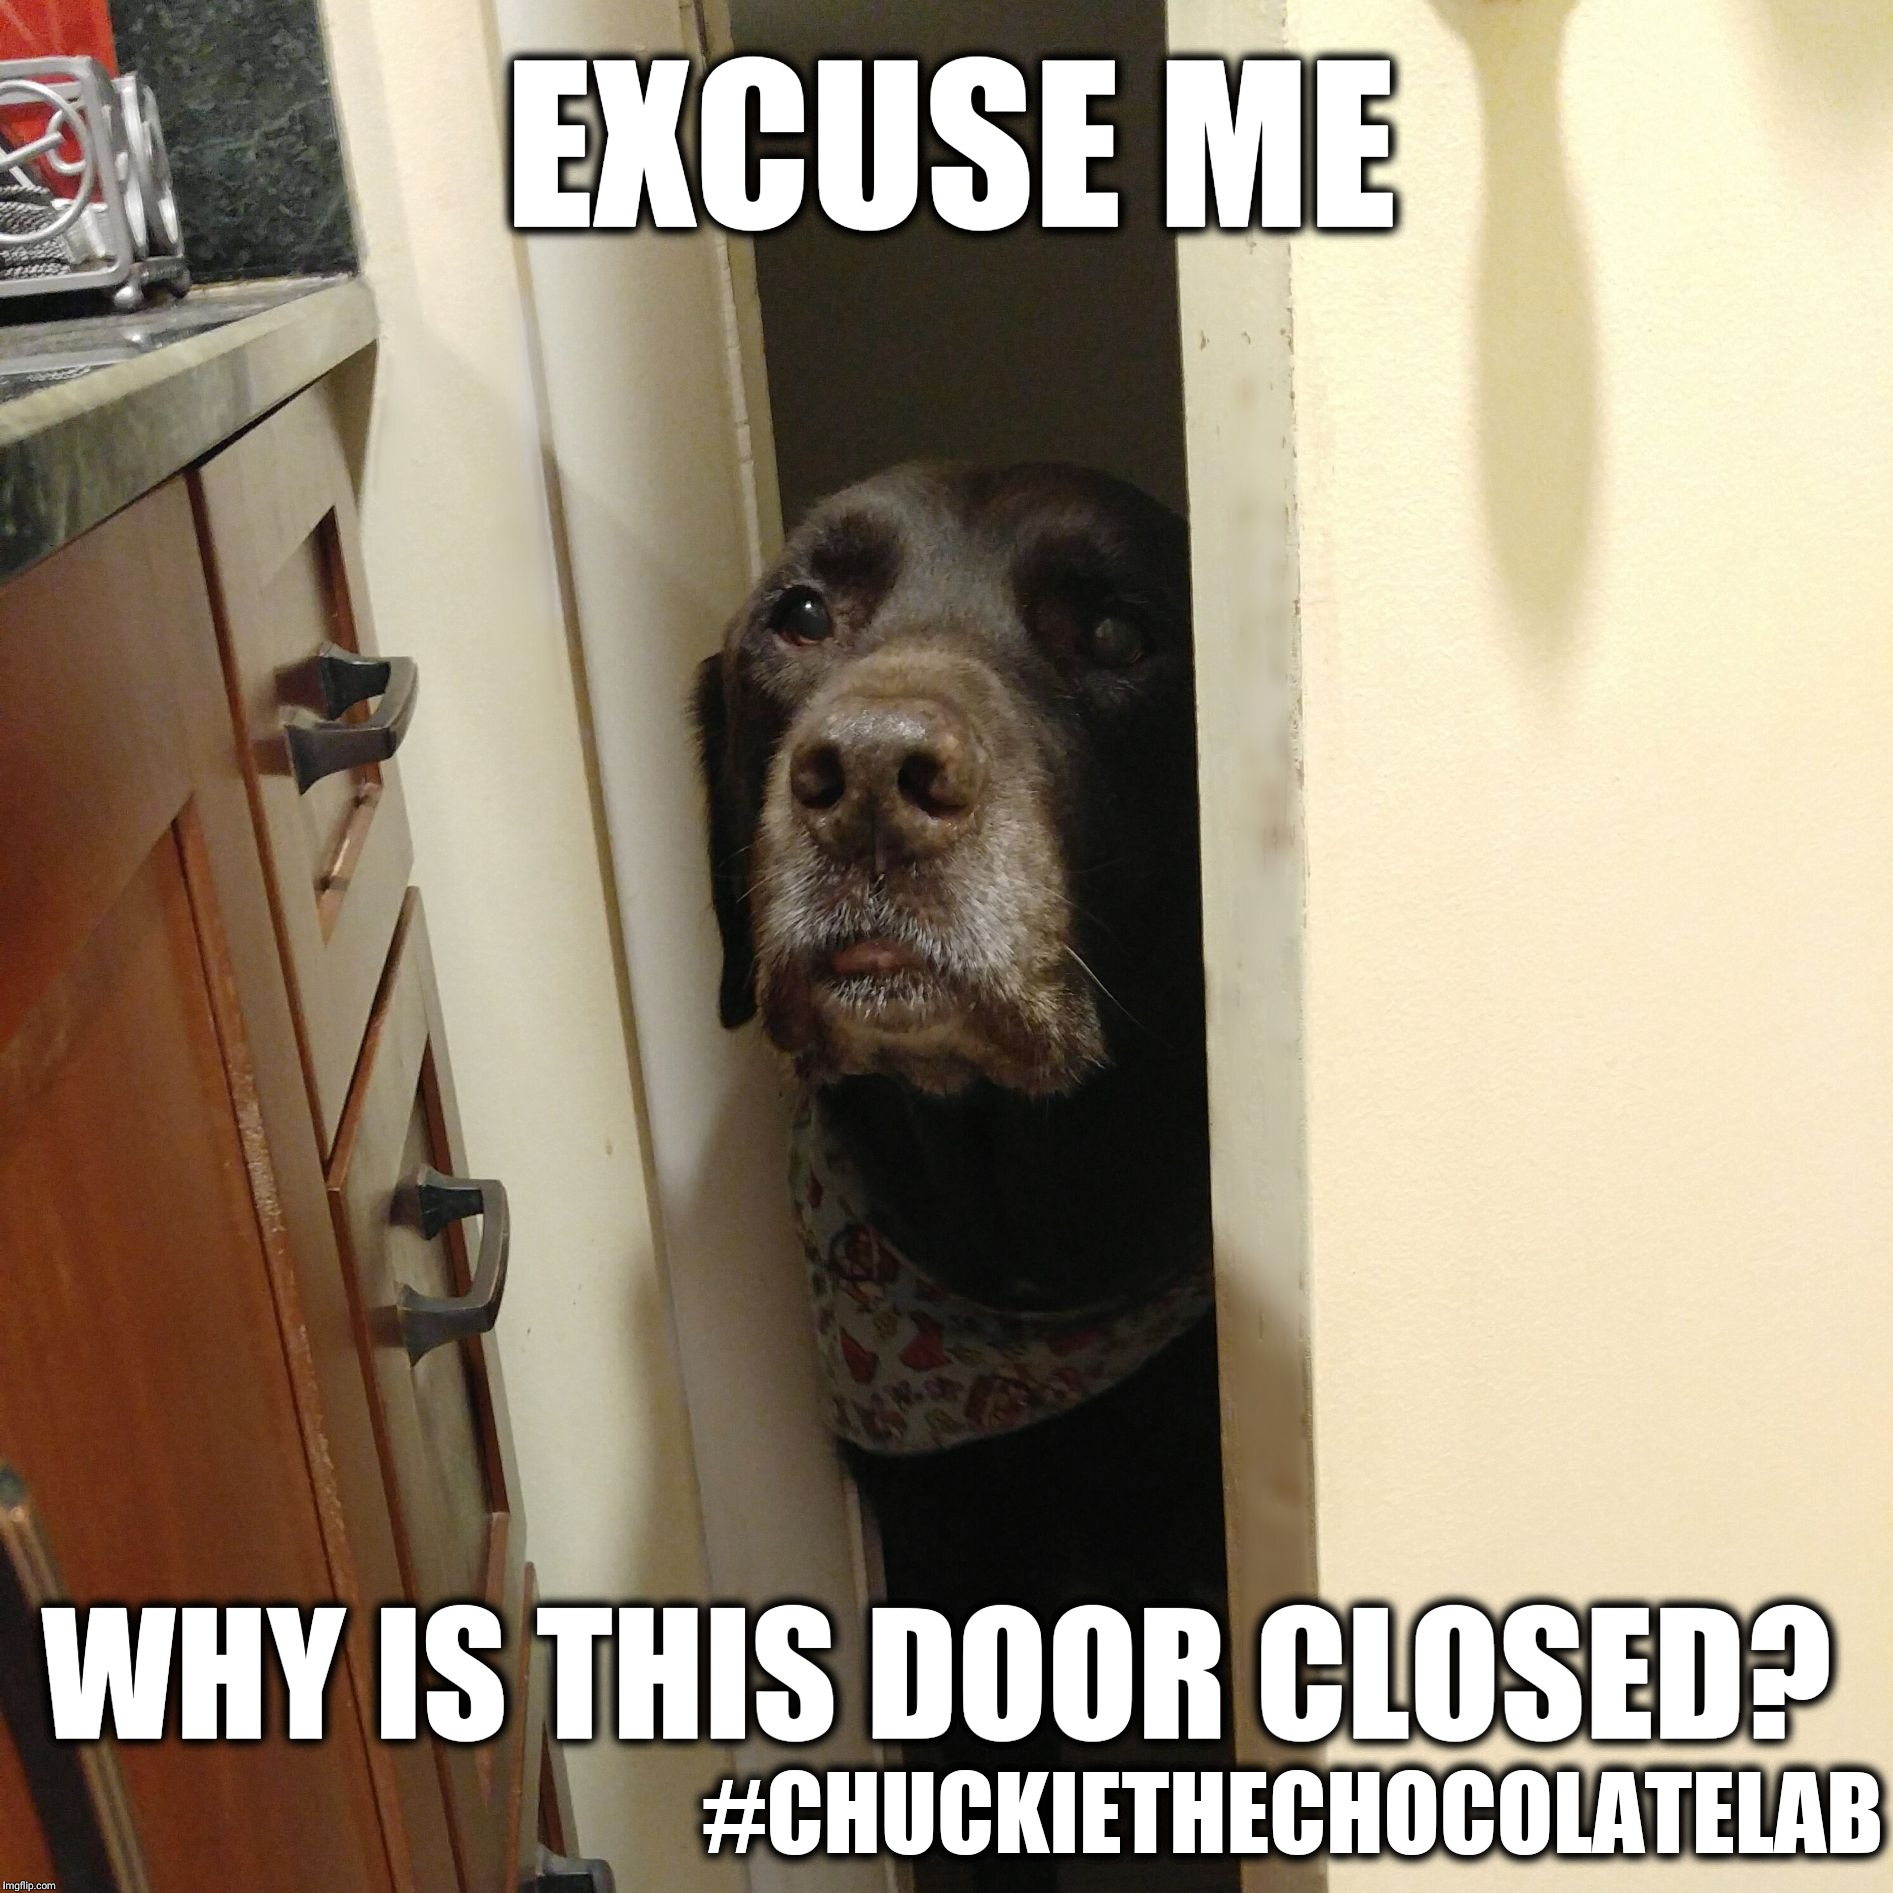 No privacy  | EXCUSE ME #CHUCKIETHECHOCOLATELAB WHY IS THIS DOOR CLOSED? | image tagged in chuckie the chocolate lab teamchuckie,excuse me,no privacy,dogs,funny,memes | made w/ Imgflip meme maker